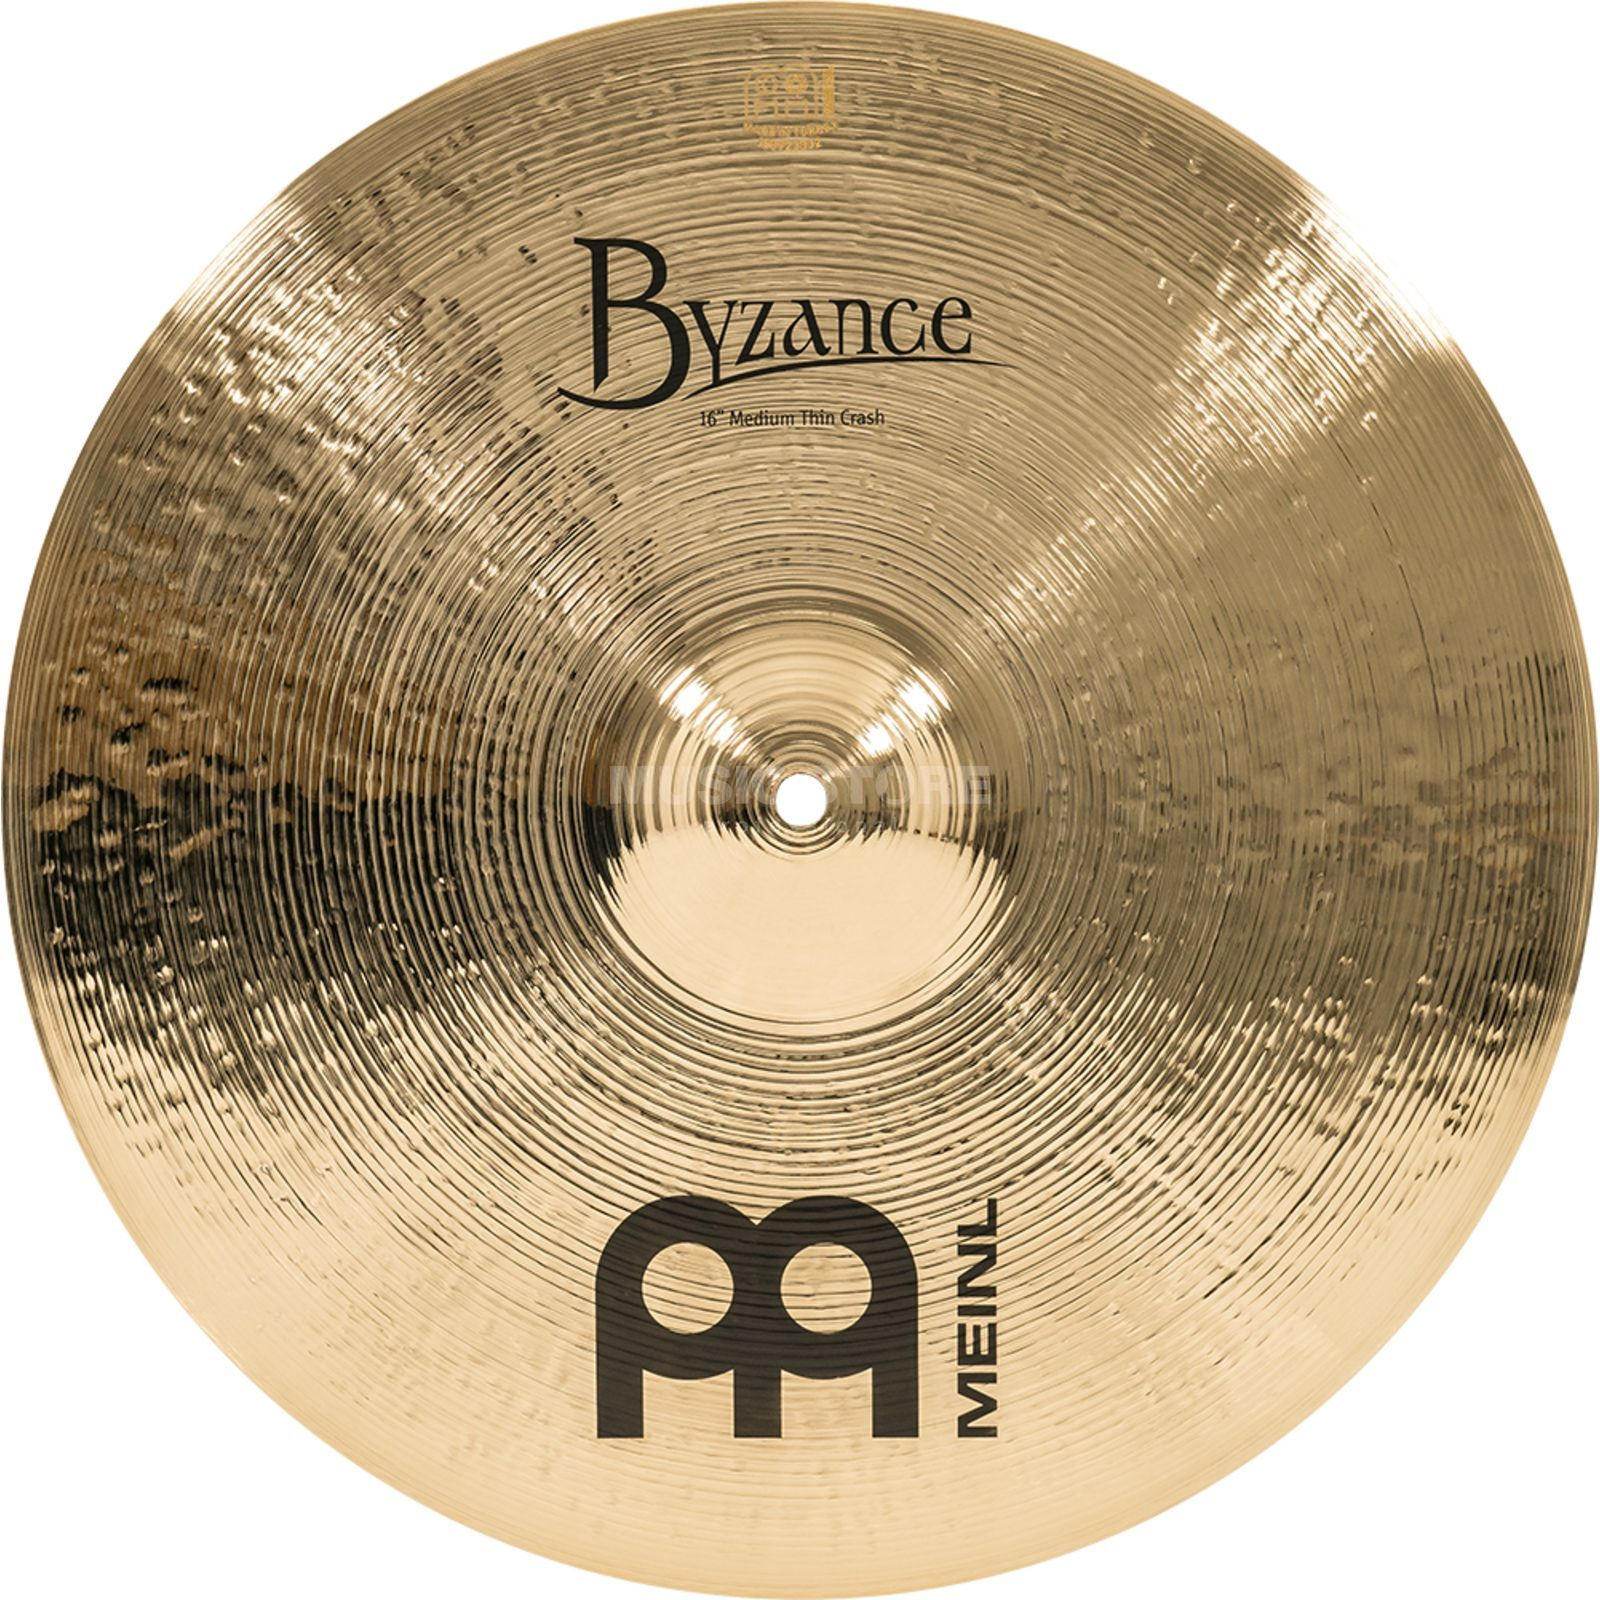 "Meinl Byzance Medium Thin Crash 16"" B16MTC-B, Brilliant Produktbild"